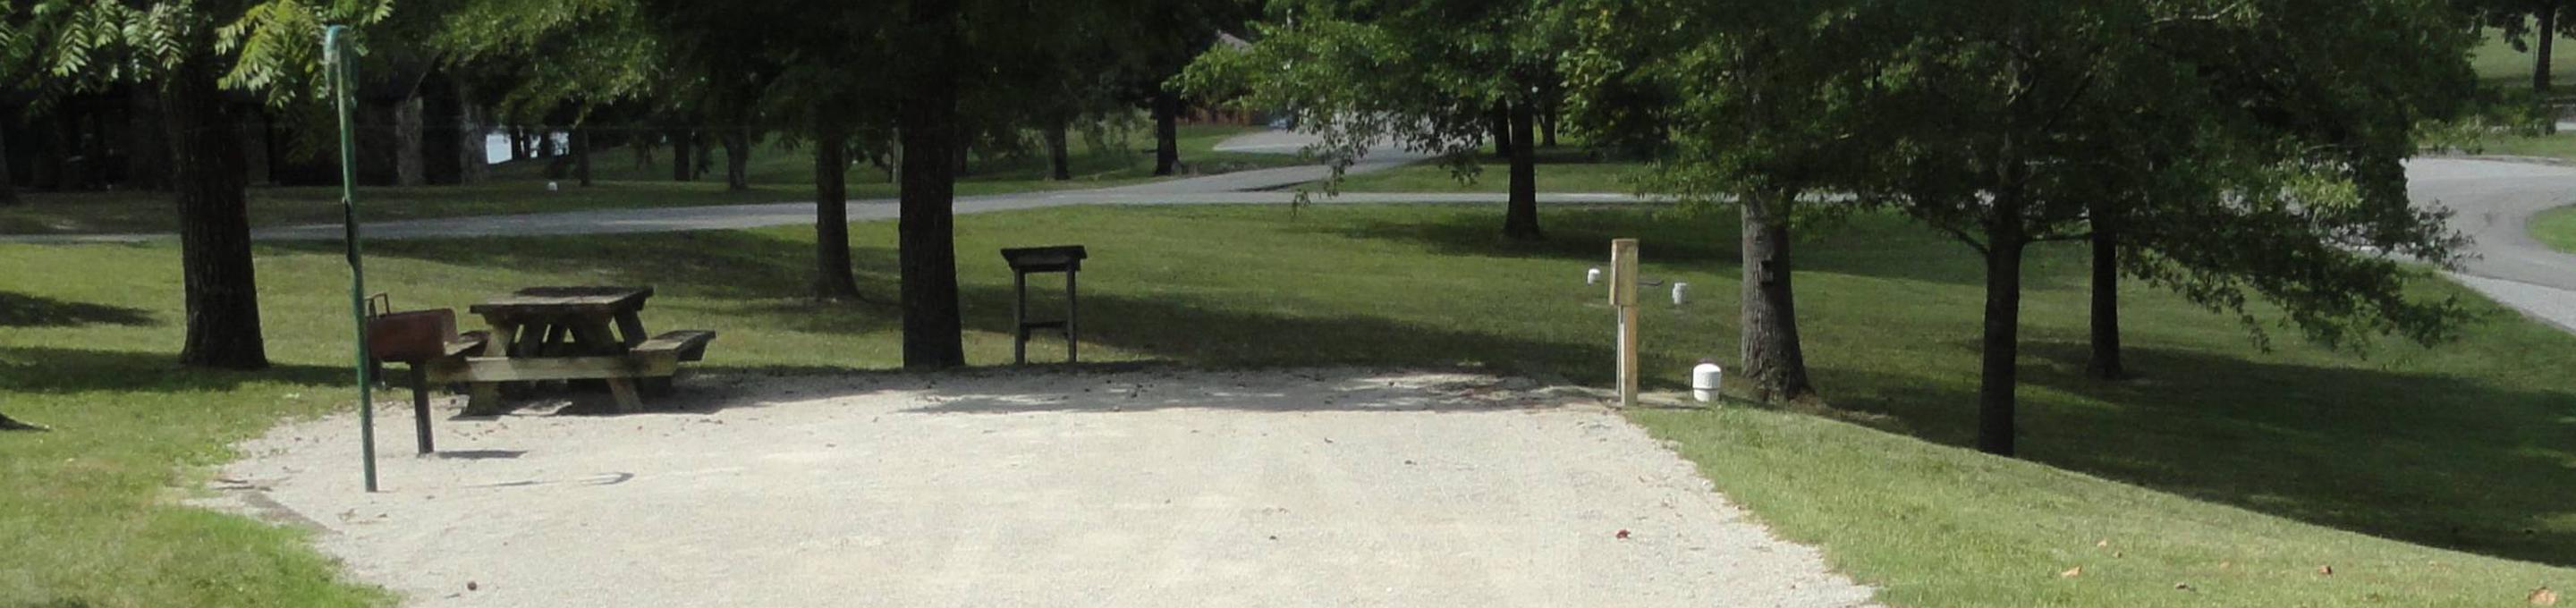 WILLOW GROVE CAMPGROUND